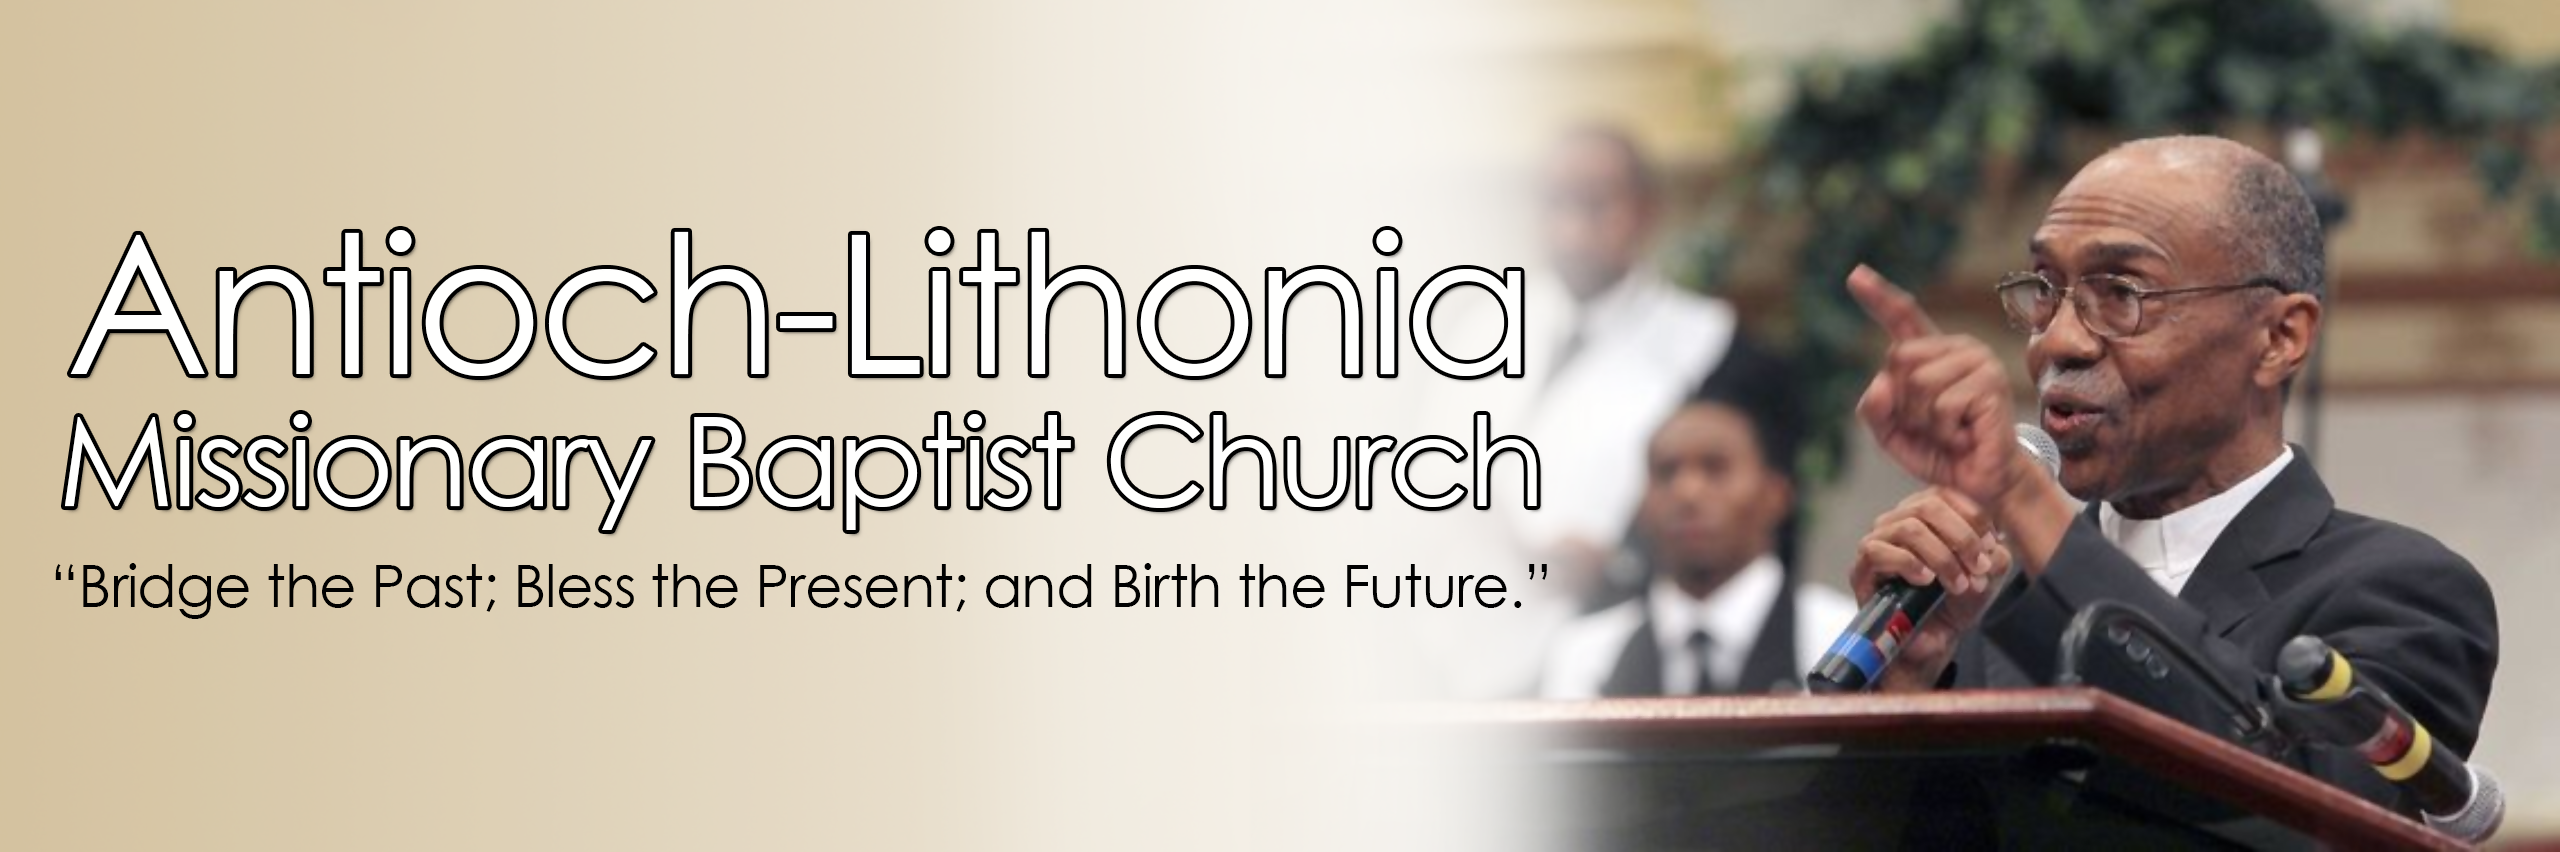 Antioch Lithonia